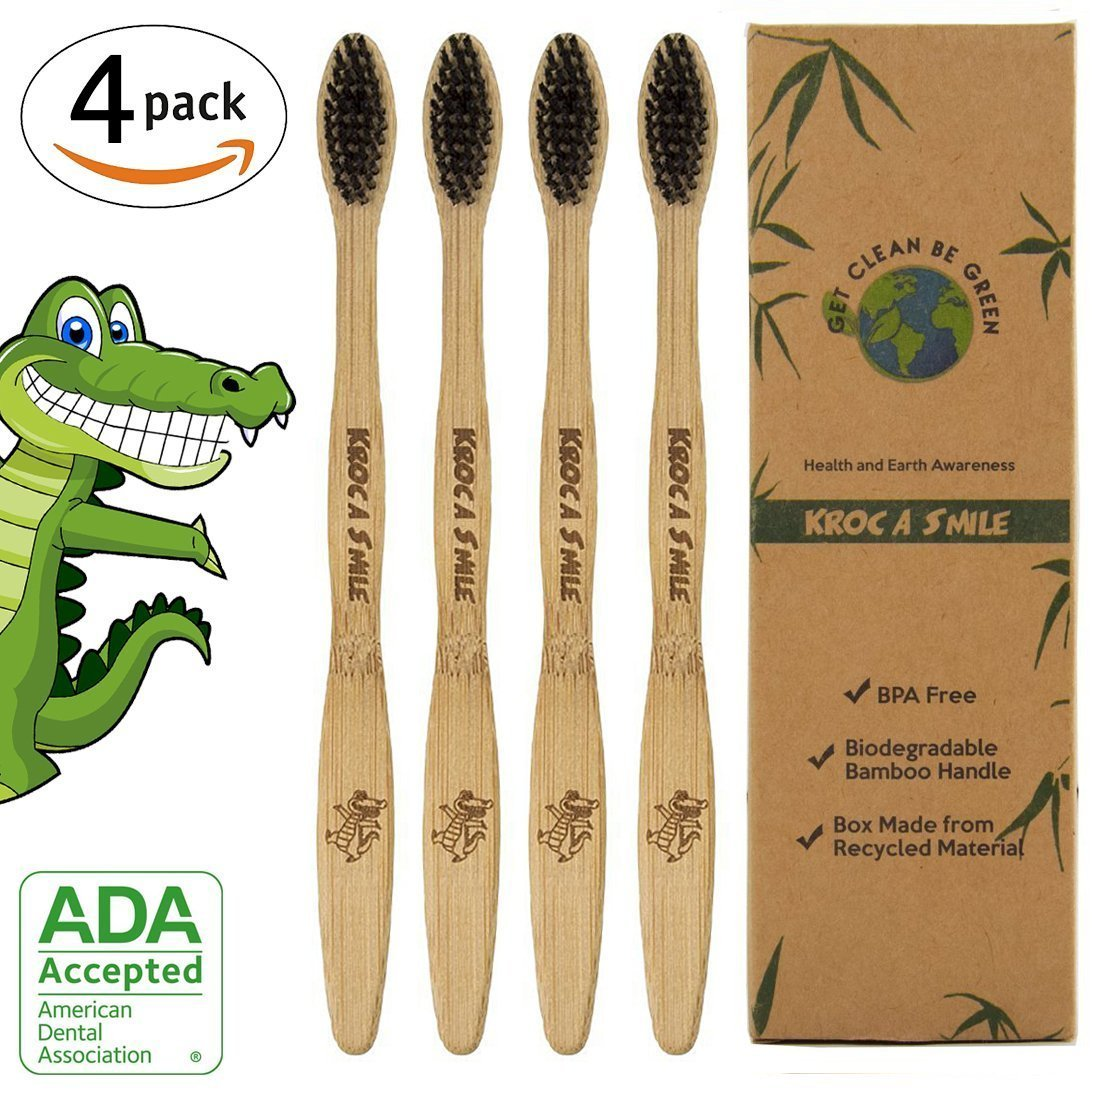 Bamboo Toothbrush,Kroo NV Eco-friendly 100% Organic and Biodegradable Soft BPA Free Bristles for Kids and Adults Humble Toothbrush (White, Pack of 4) 5MY-AC-BRU-N1